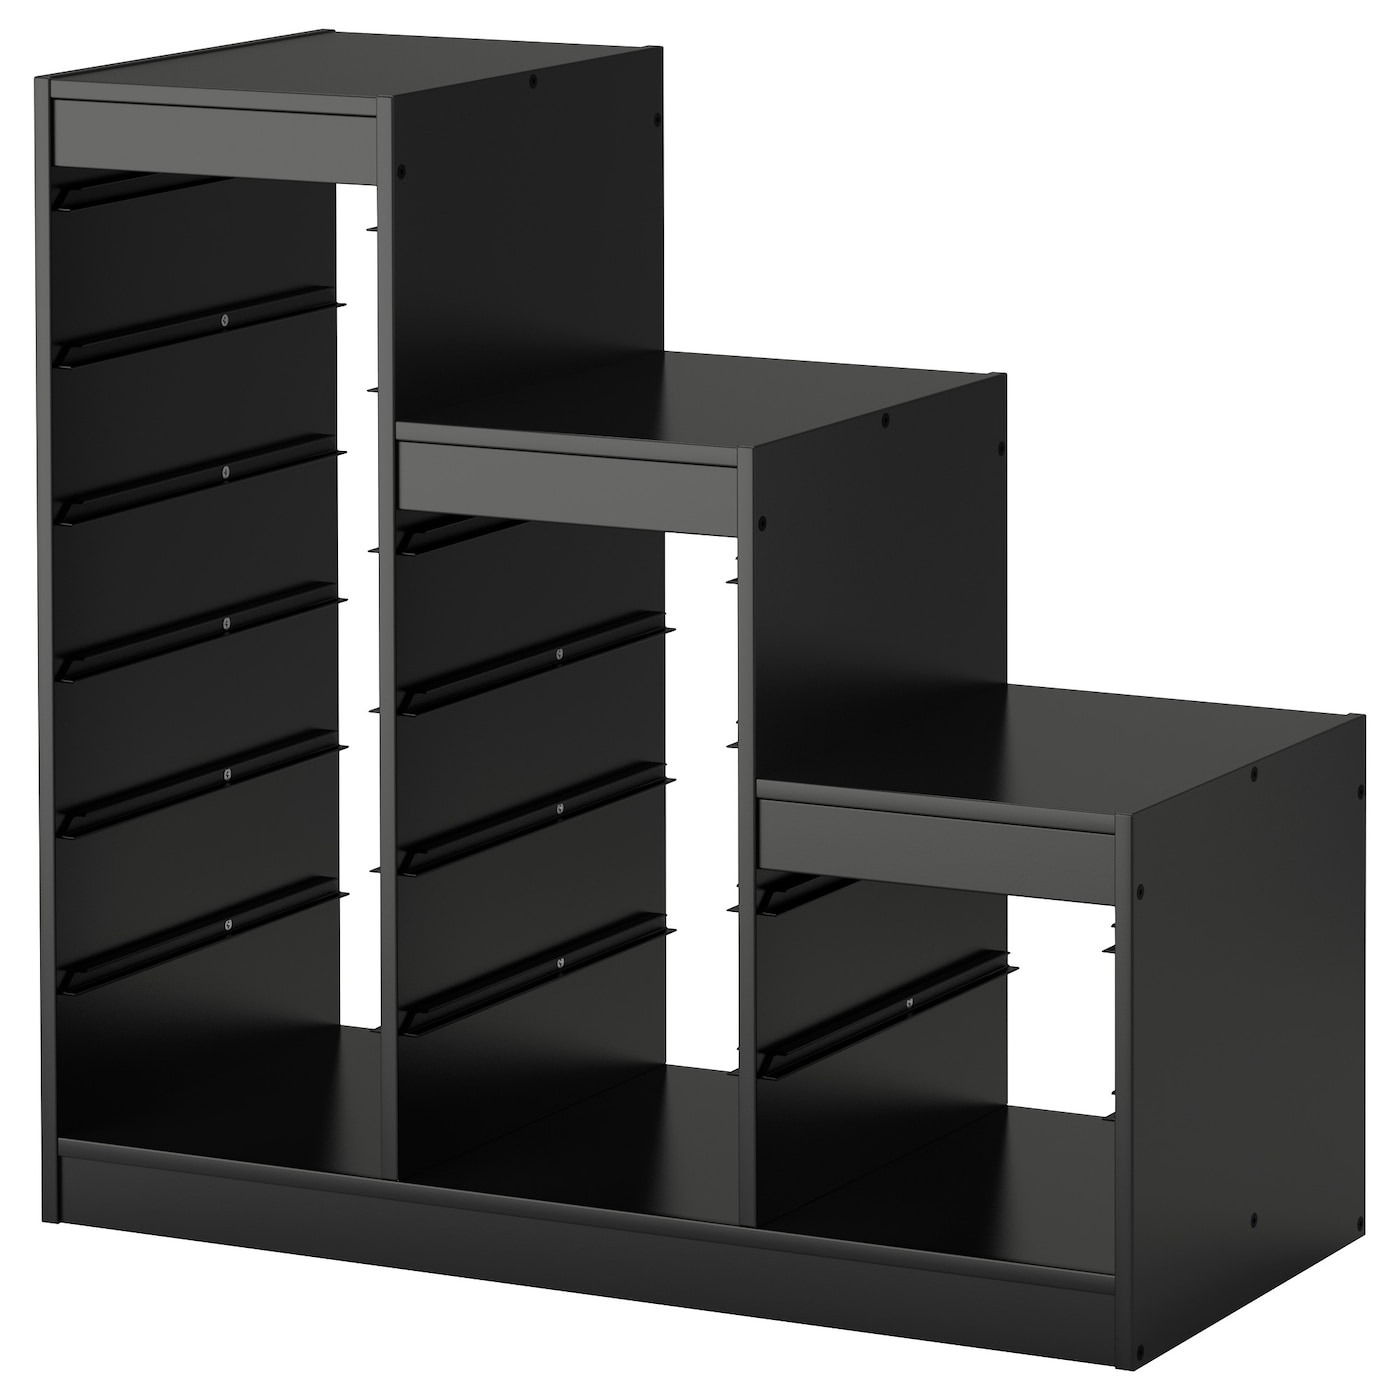 meuble rangement enfant mobilier rangement enfant ikea. Black Bedroom Furniture Sets. Home Design Ideas